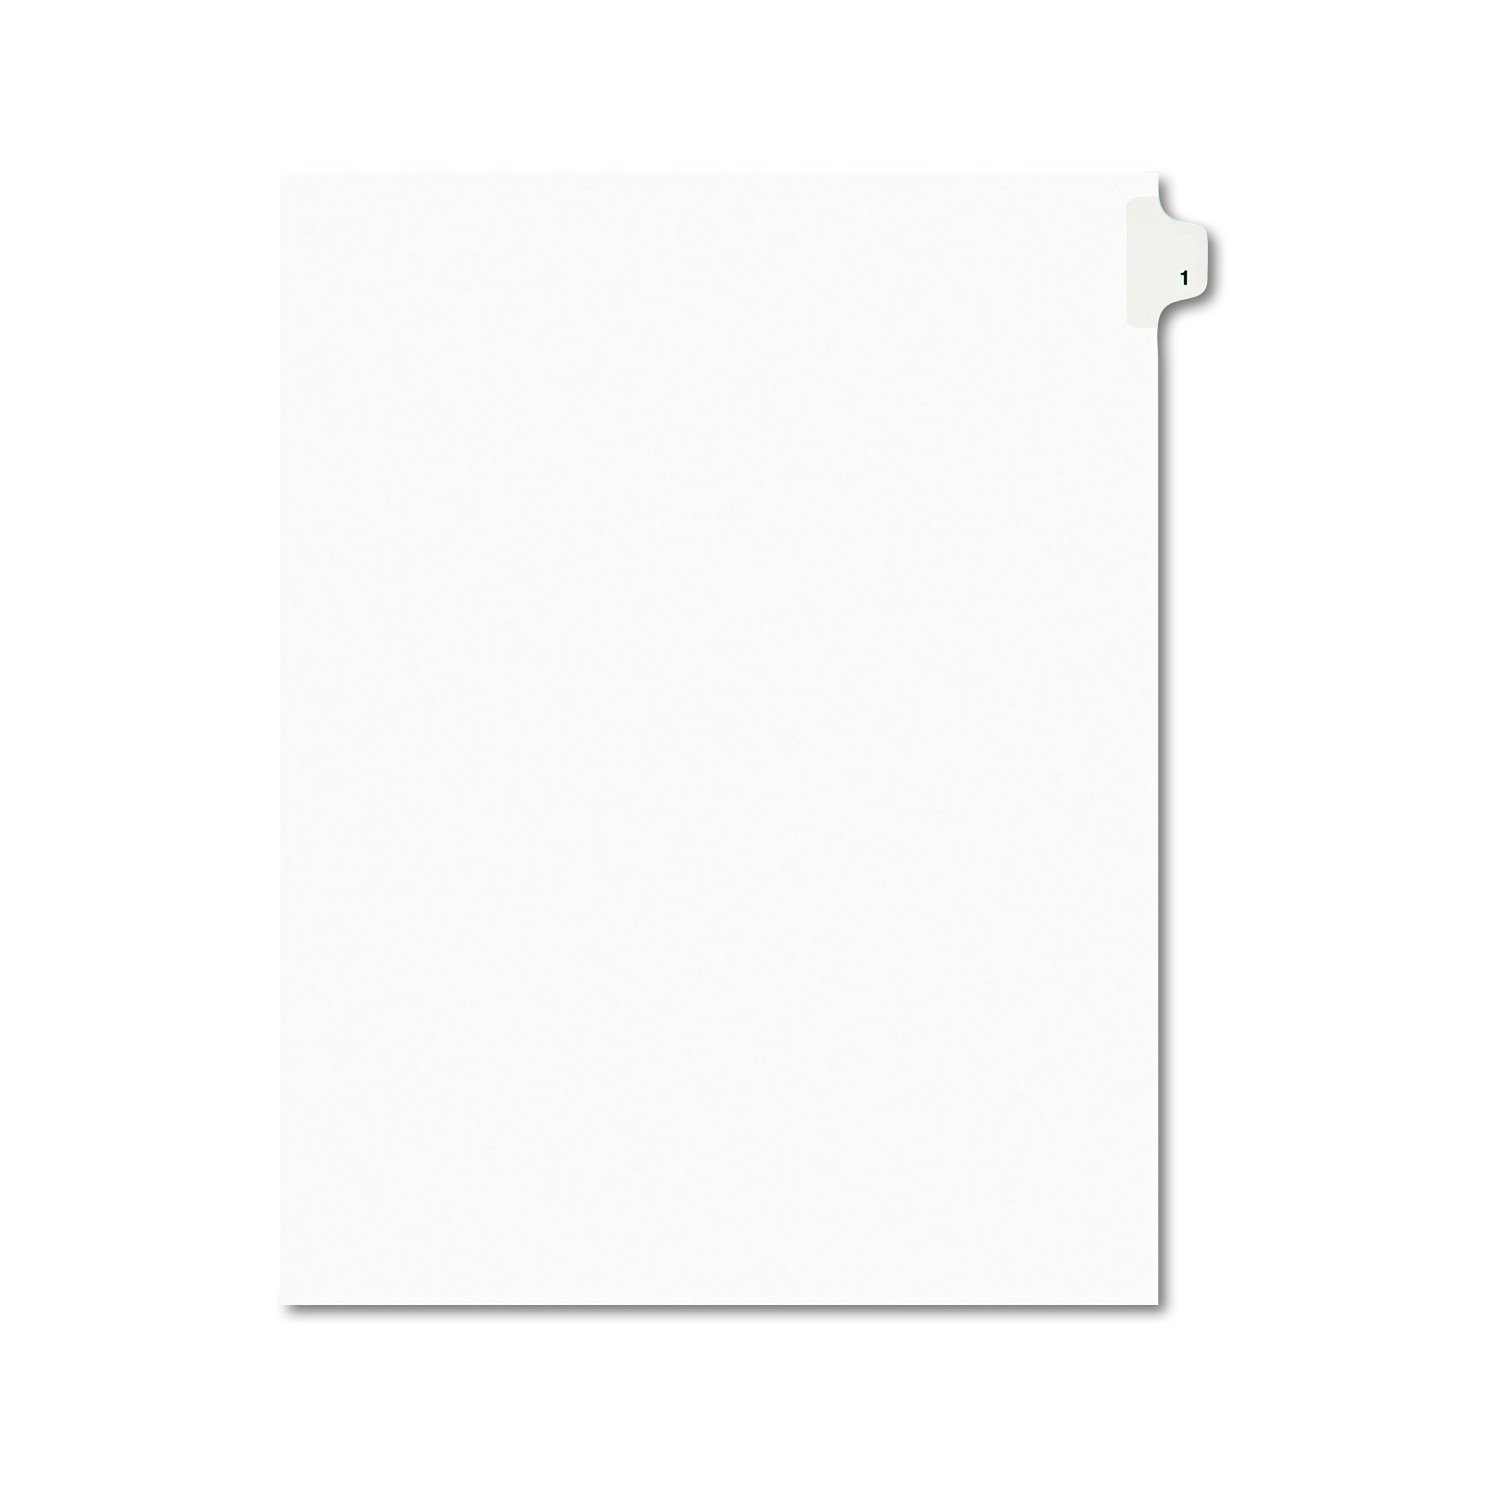 Avery Individual Legal Exhibit Dividers, Avery Style, 1, Side Tab, 8.5 x 11 inches, Pack of 25 (11911)